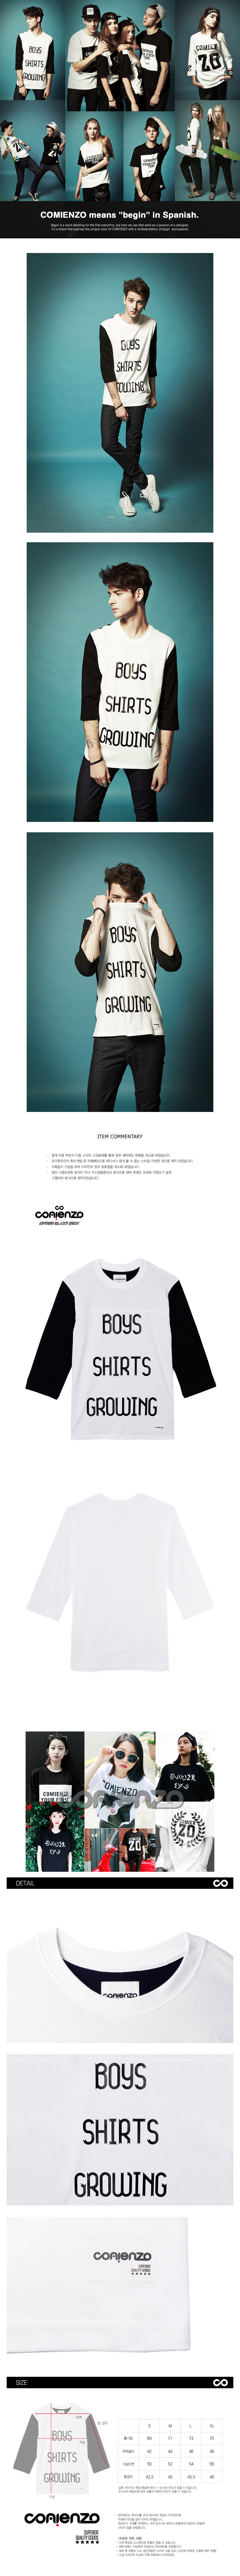 [꼬미엔조] COMIENZO BSG coloration FOOTBALL TEE (WHITE/BLACK) _풋볼티_럭비티